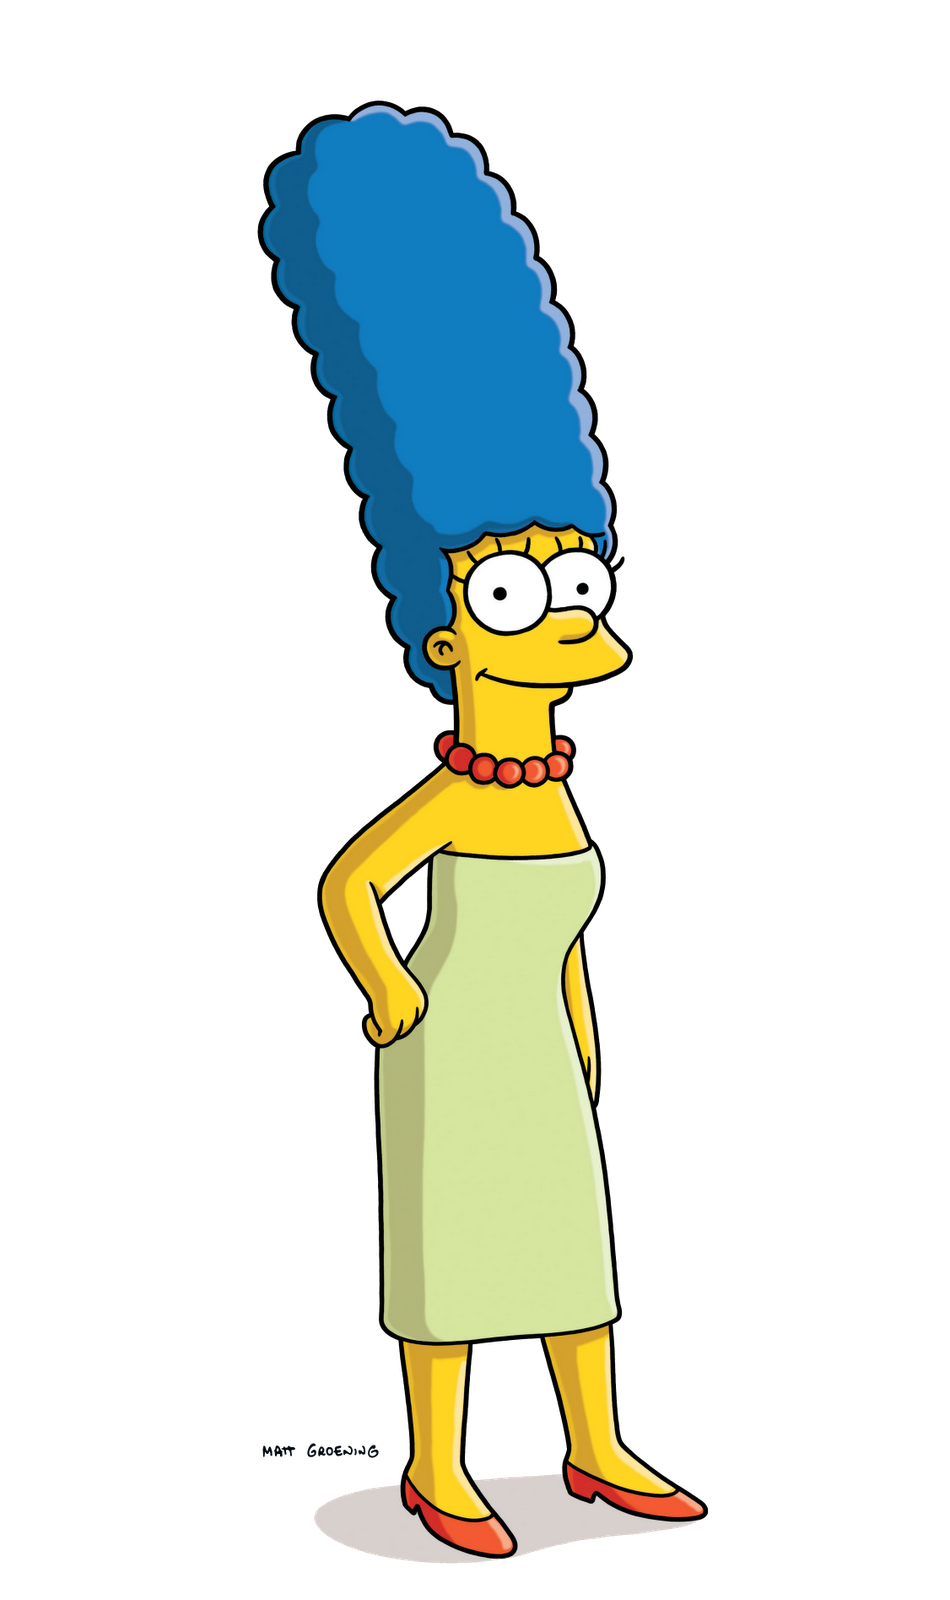 Cartoon Characters Simpsons : Cartoon characters simpsons png pack